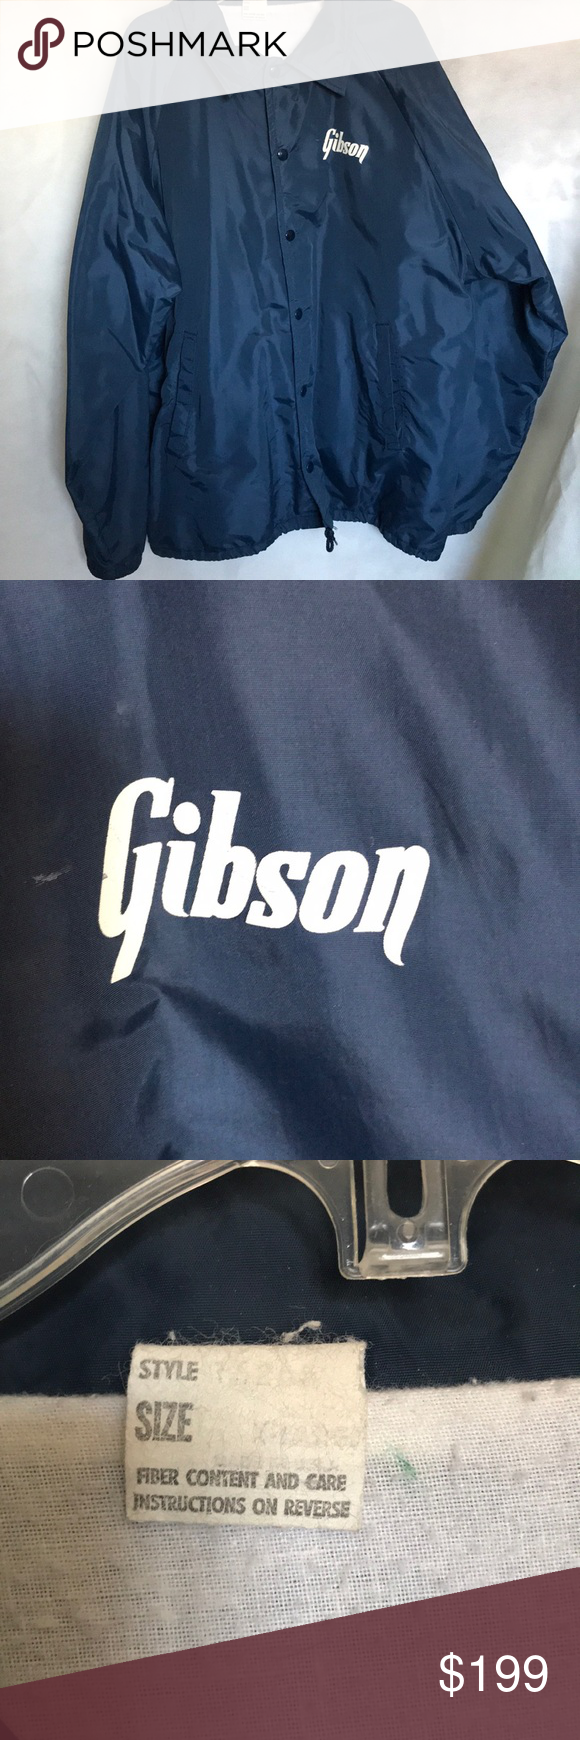 "Vintage Gibson Guitar Windbreaker Jacket XL Vintage Gibson Guitar Men's Blue windbreaker jacket. Size XL. No flaws to this jacket. Even still has regular tag and ties on the bottom around the waist. This jacket is amazing.   Measurements... Shoulder to shoulder: 20"" Sleeve: 25"" Chest: 26"" Waist: 26"" Total length: 30"" Gibson Jackets & Coats Windbreakers #gibsonguitars Vintage Gibson Guitar Windbreaker Jacket XL Vintage Gibson Guitar Men's Blue windbreaker jacket. Size XL. No flaws t #gibsonguitars"